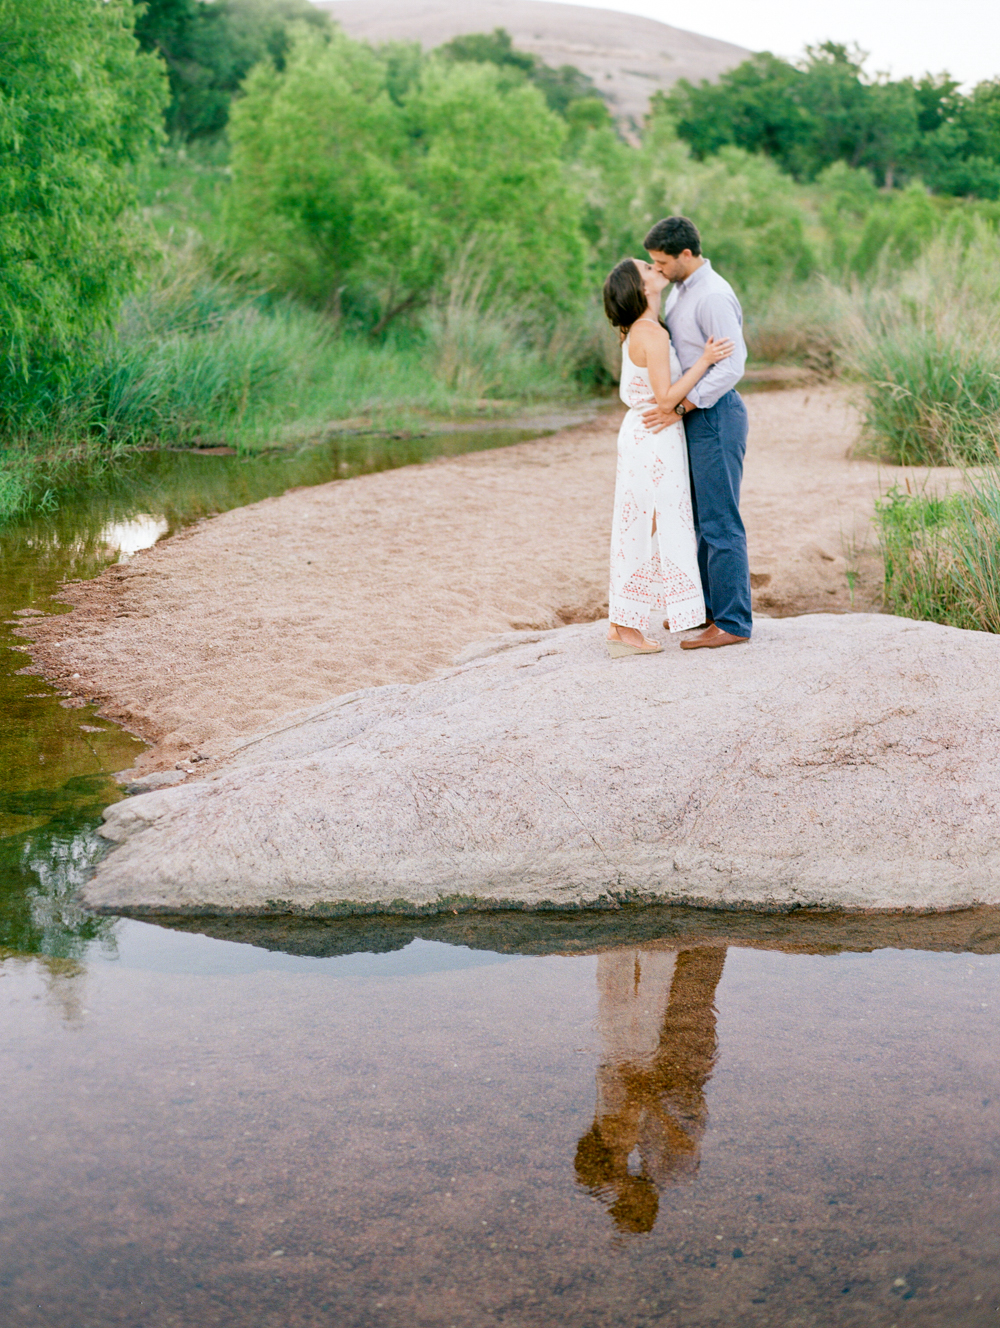 dana fernandez photography enchanted rock engagements photographer austin wedding destination film-17.jpg